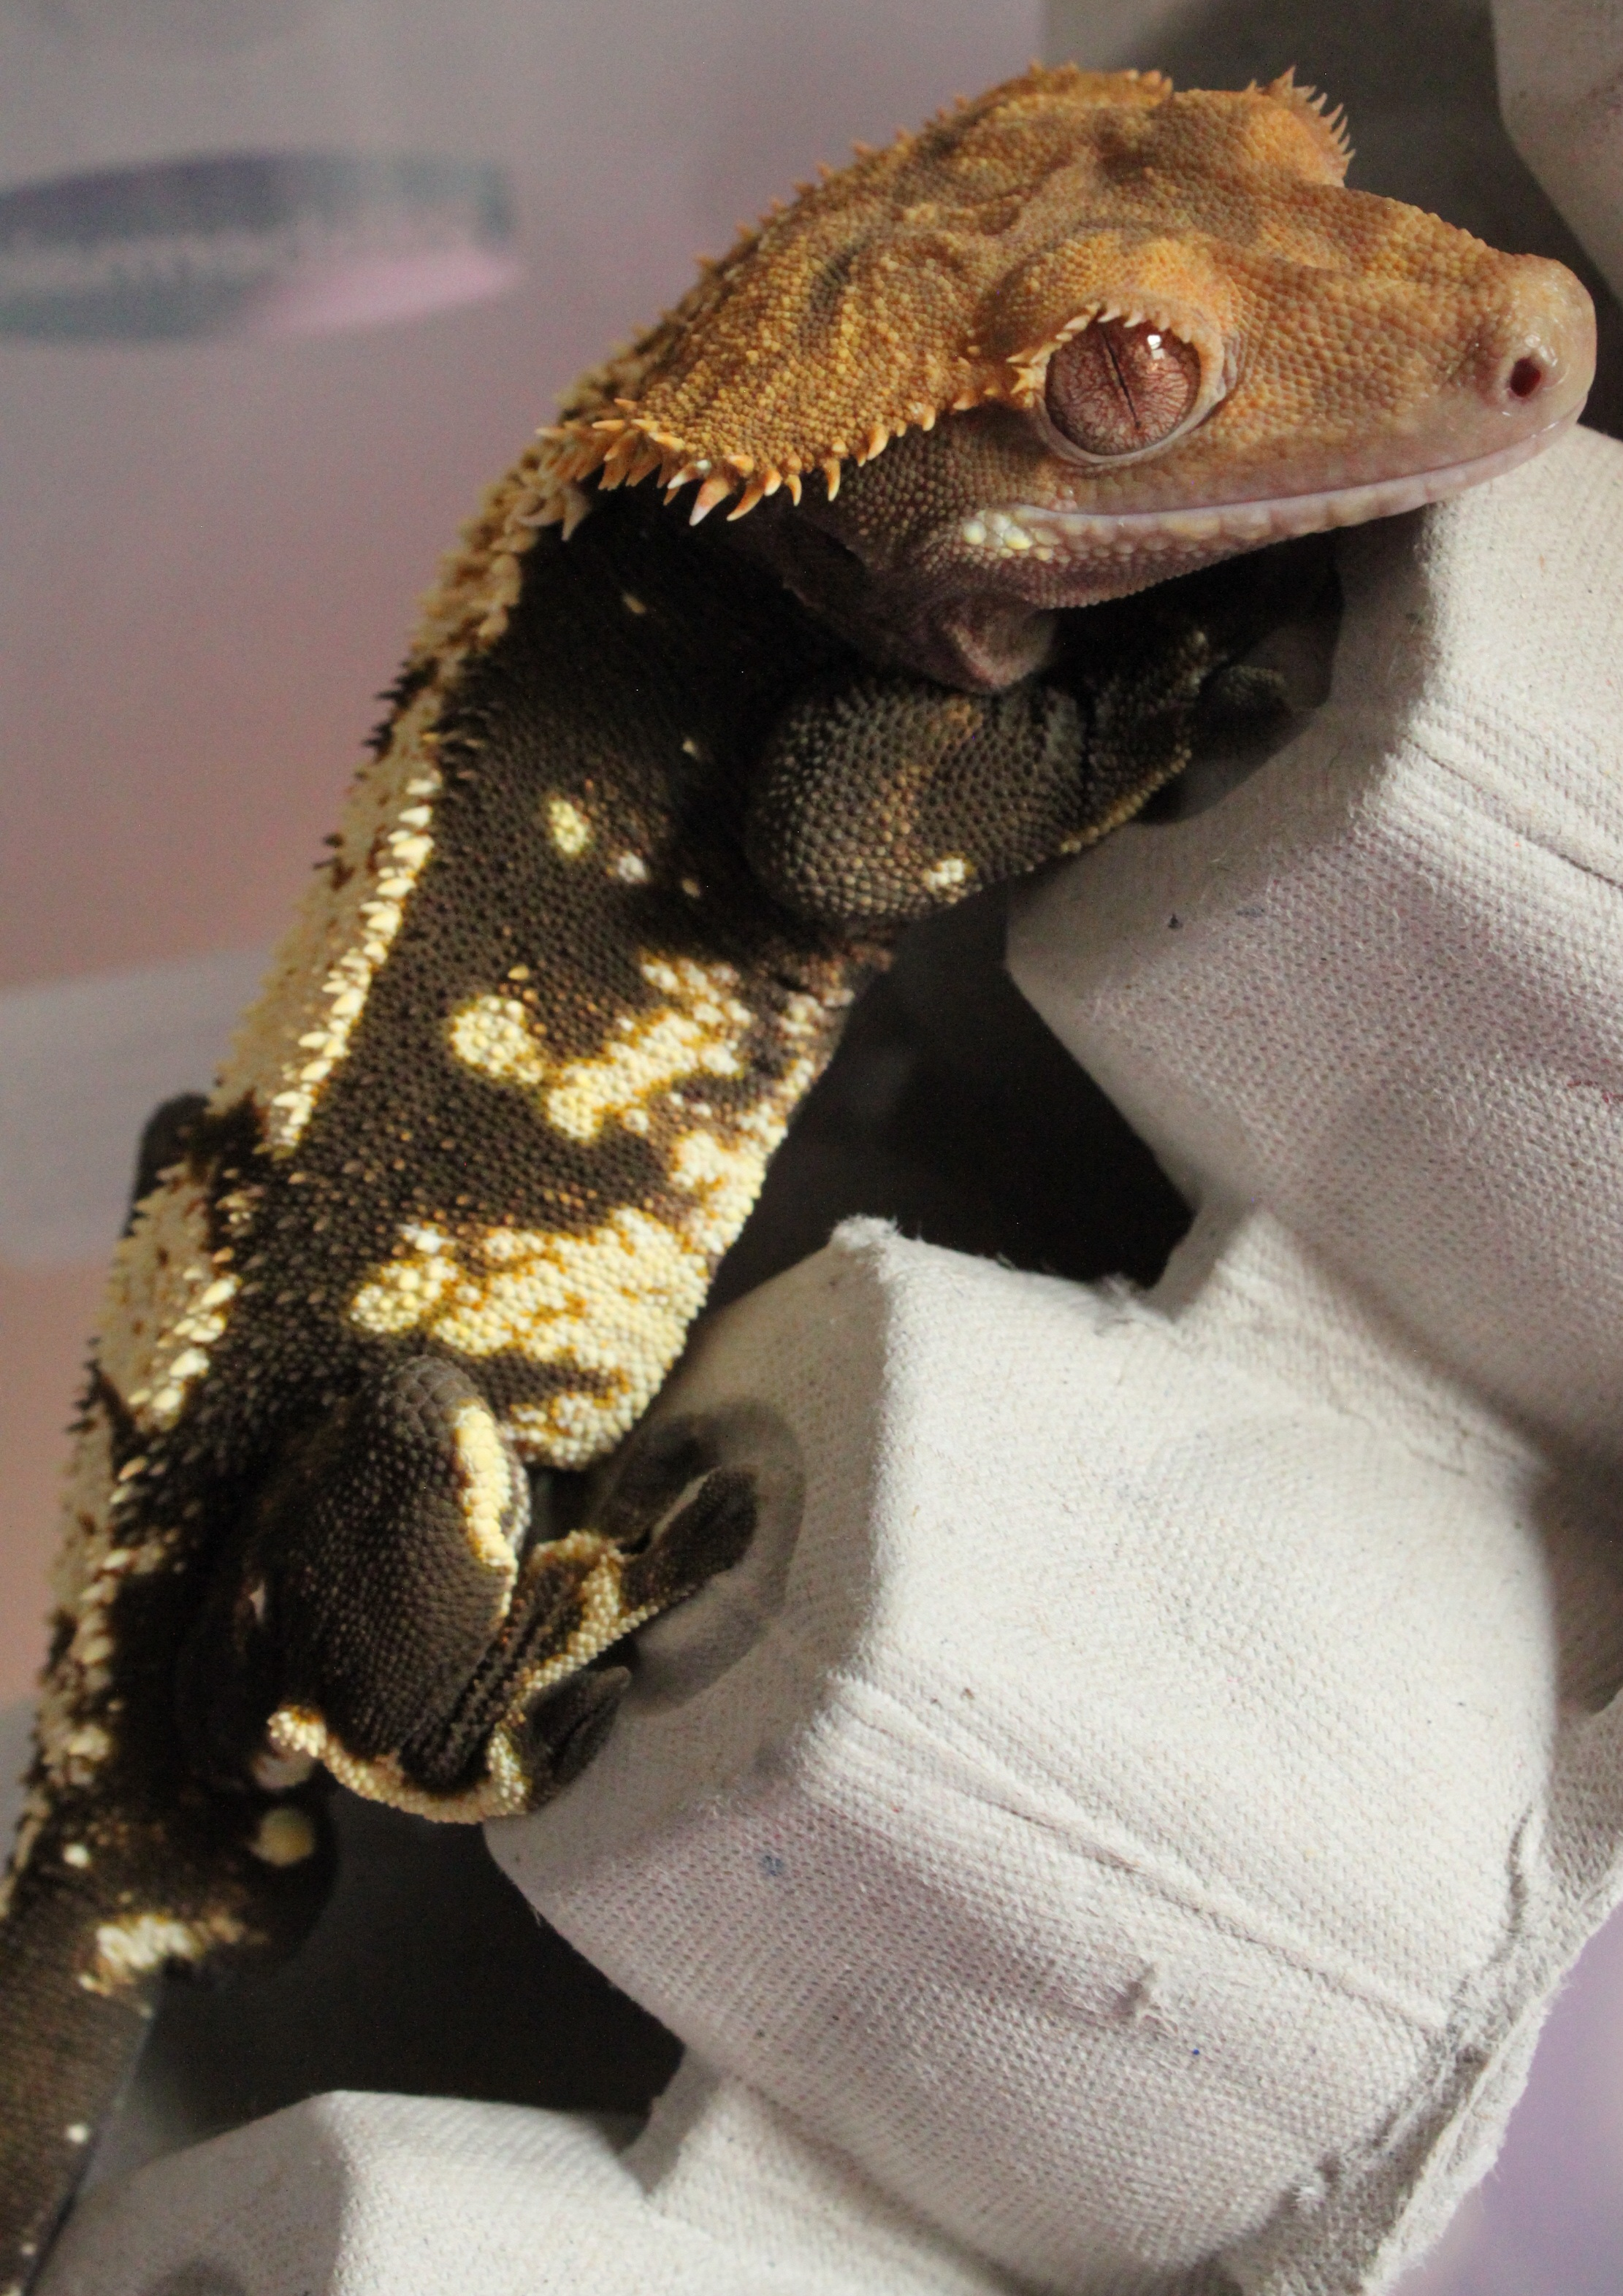 Magma - A Blonde Harlequin: Father of all my current babies. He was originally produced by Apollo's Geckos from Cee x Lava in September of 2014. He then was with Tip O' Texas Geckos for a while before coming into my possession in 2016, where he now has a permanent home! He is the most laid back of all my adults and I hope his babies inherit his peaceful demeanor.